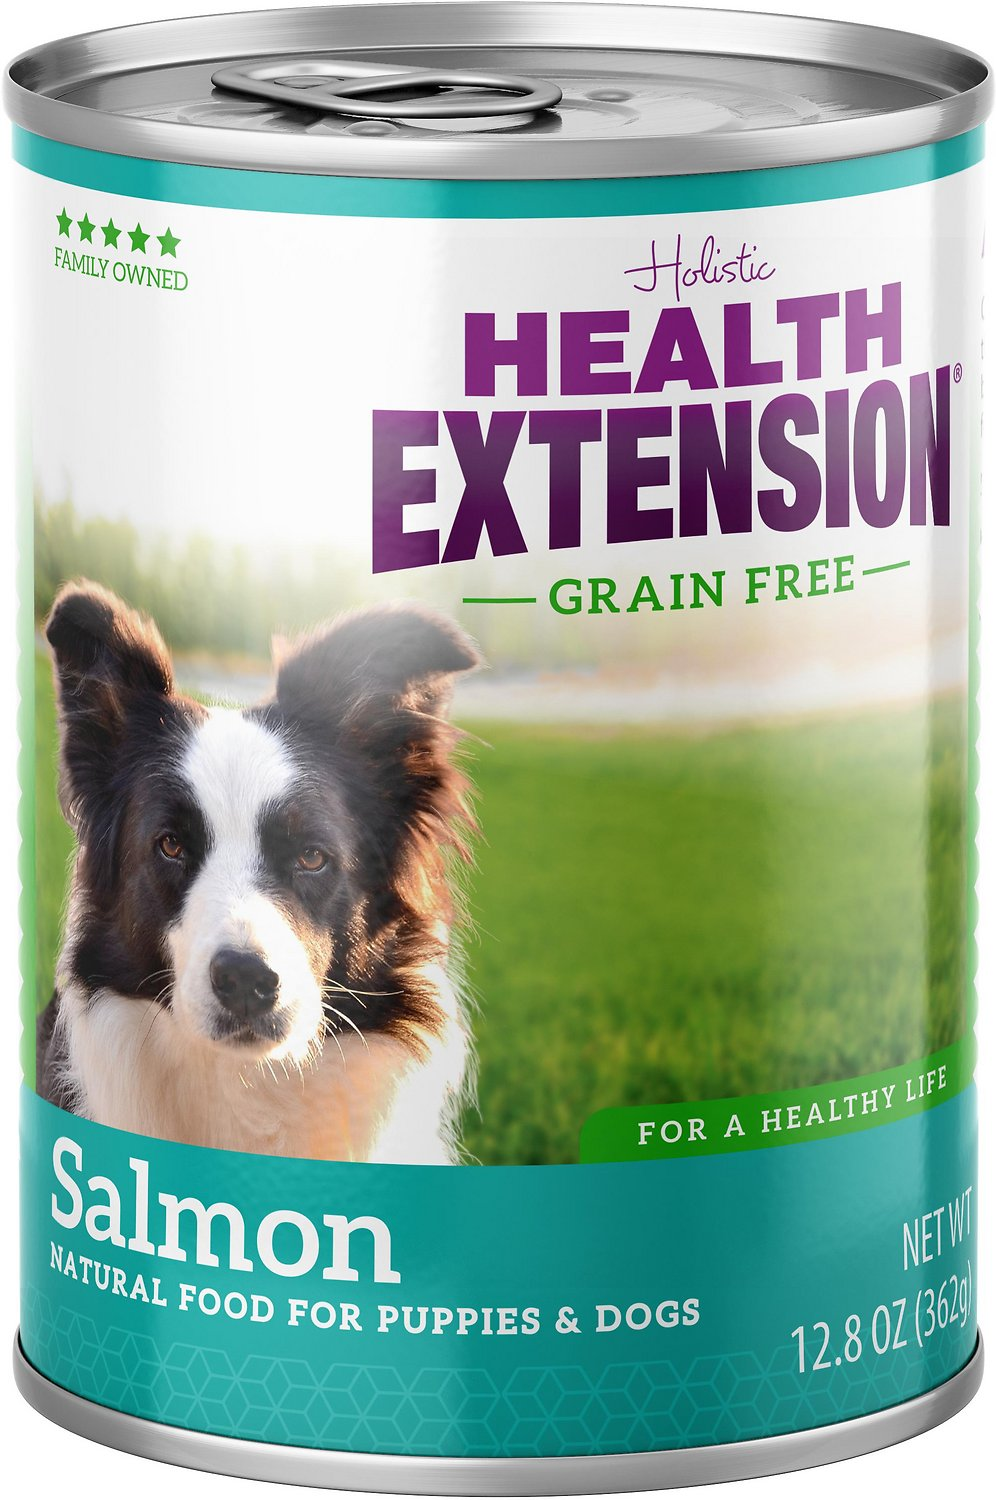 Health Extension Salmon Entree Grain-Free Canned Dog Food Image